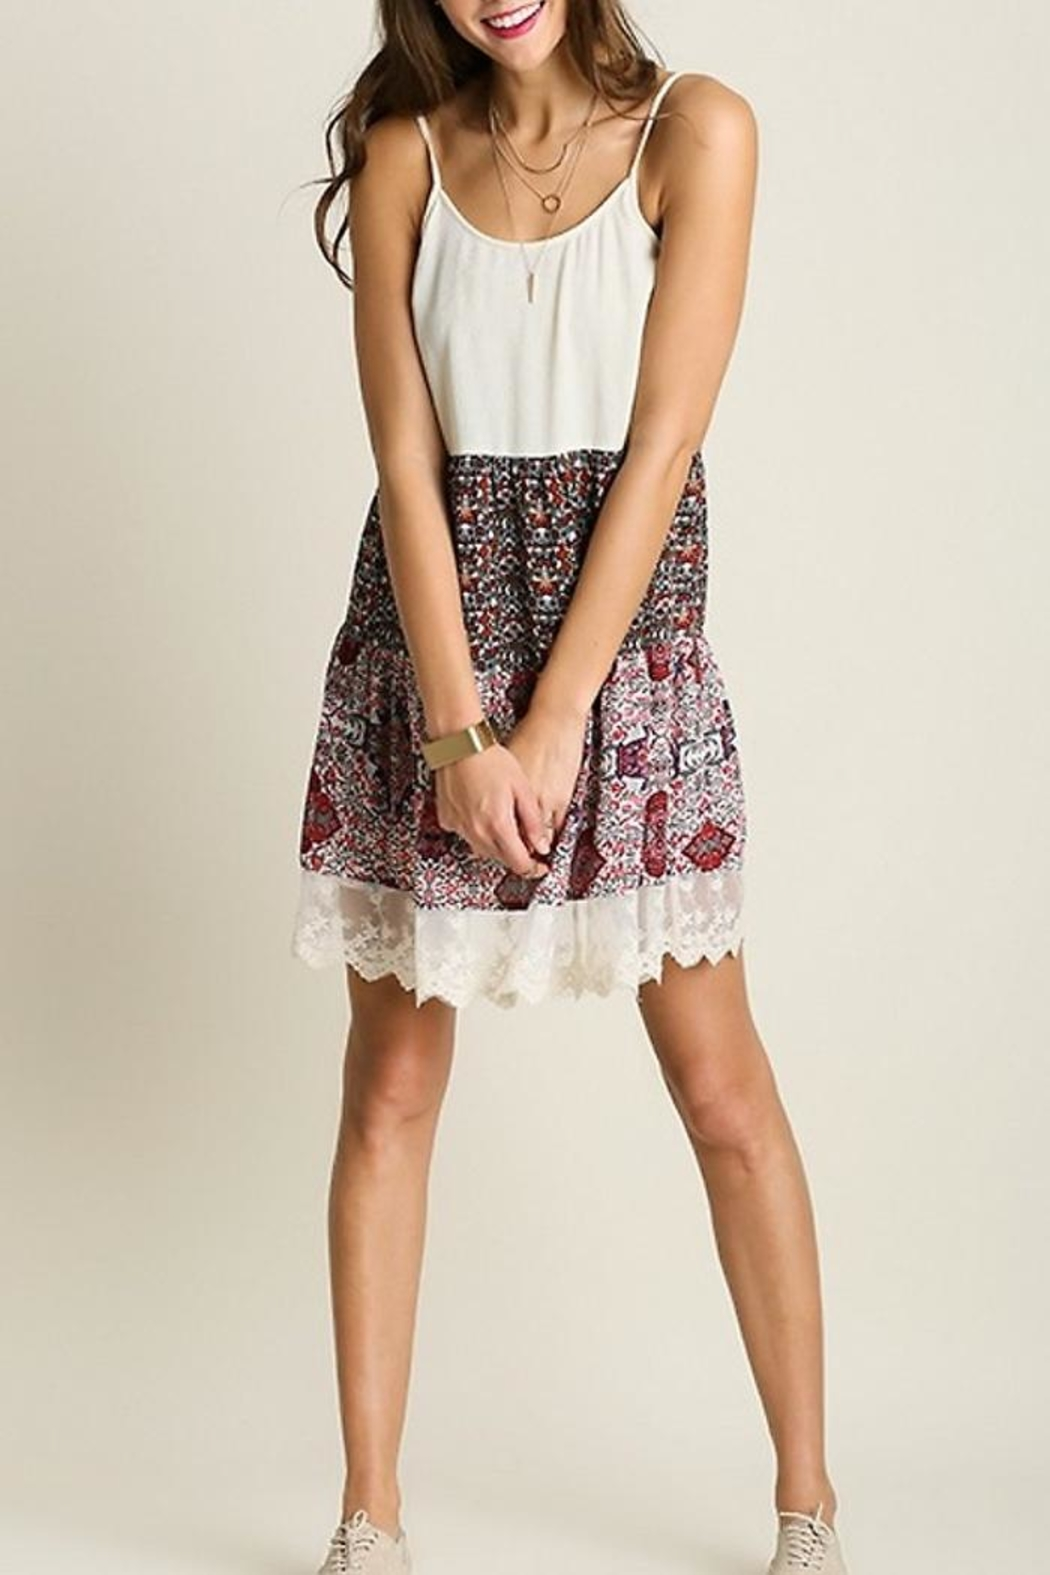 People Outfitter Country Print Dresses - Side Cropped Image